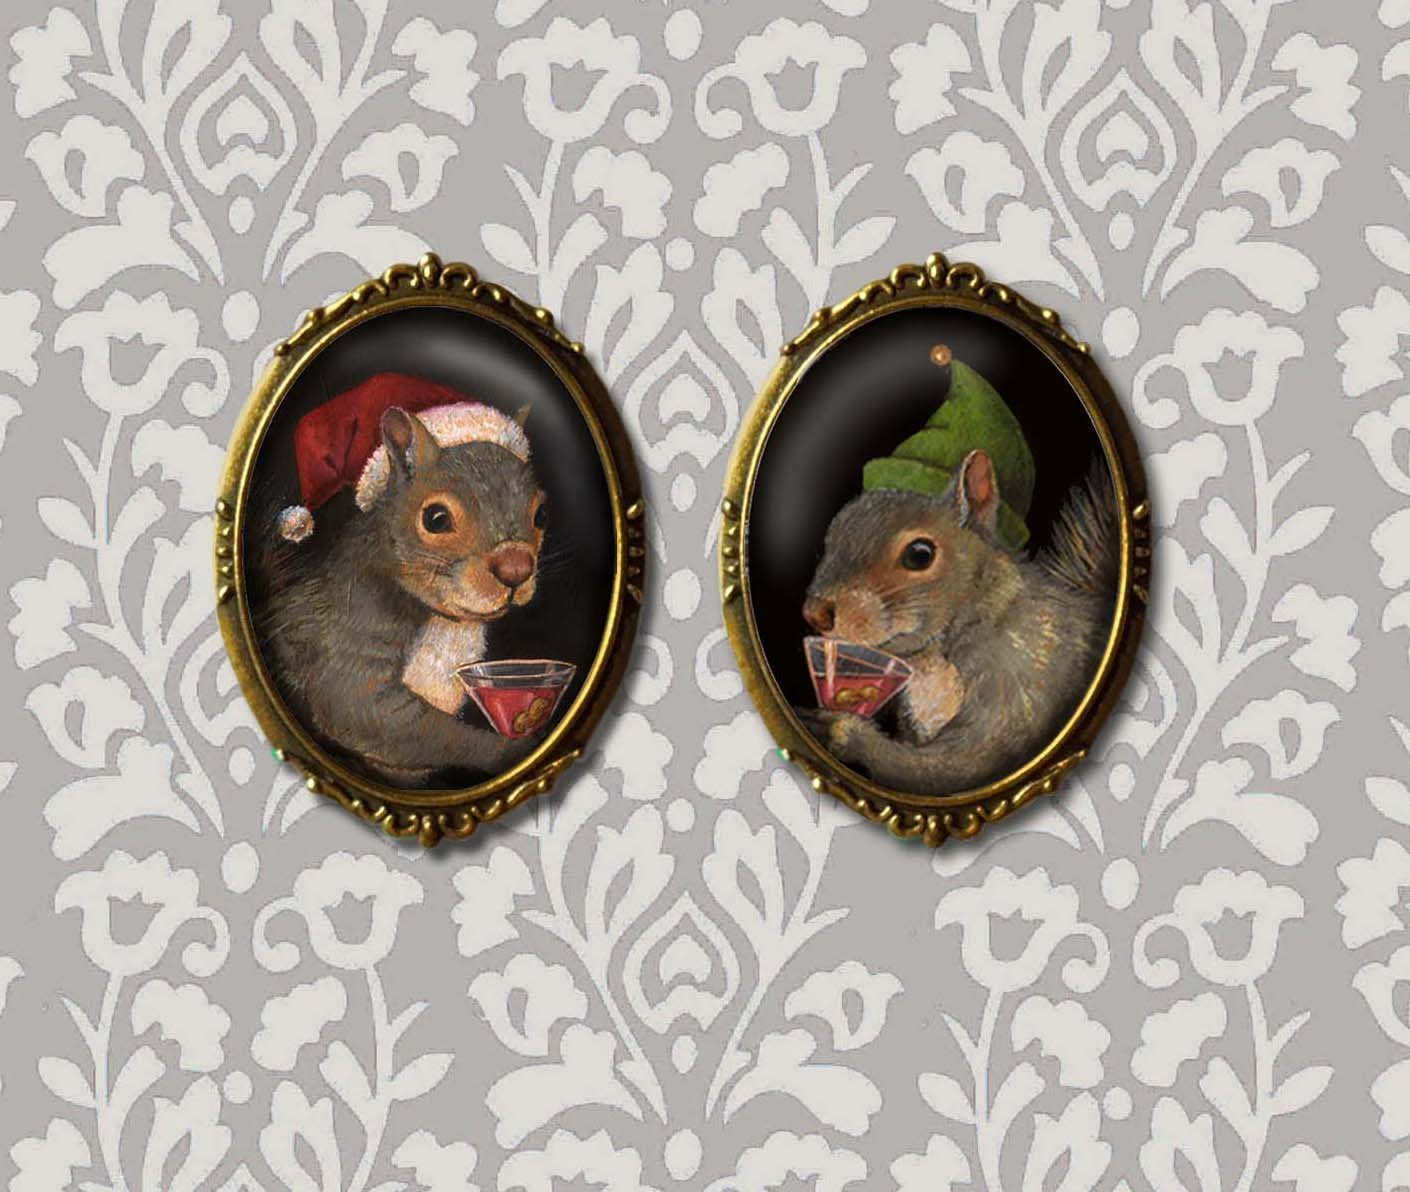 Christmas Squirrel Brooch - Squirrel Pin - Santa Squirrel - Elf Squirrel - Squirrel Lover - Secret Santa Gift - Office Gift - Teacher's Gift - Animal Lover Gift - Funny Squirrels - Cute Squirrels